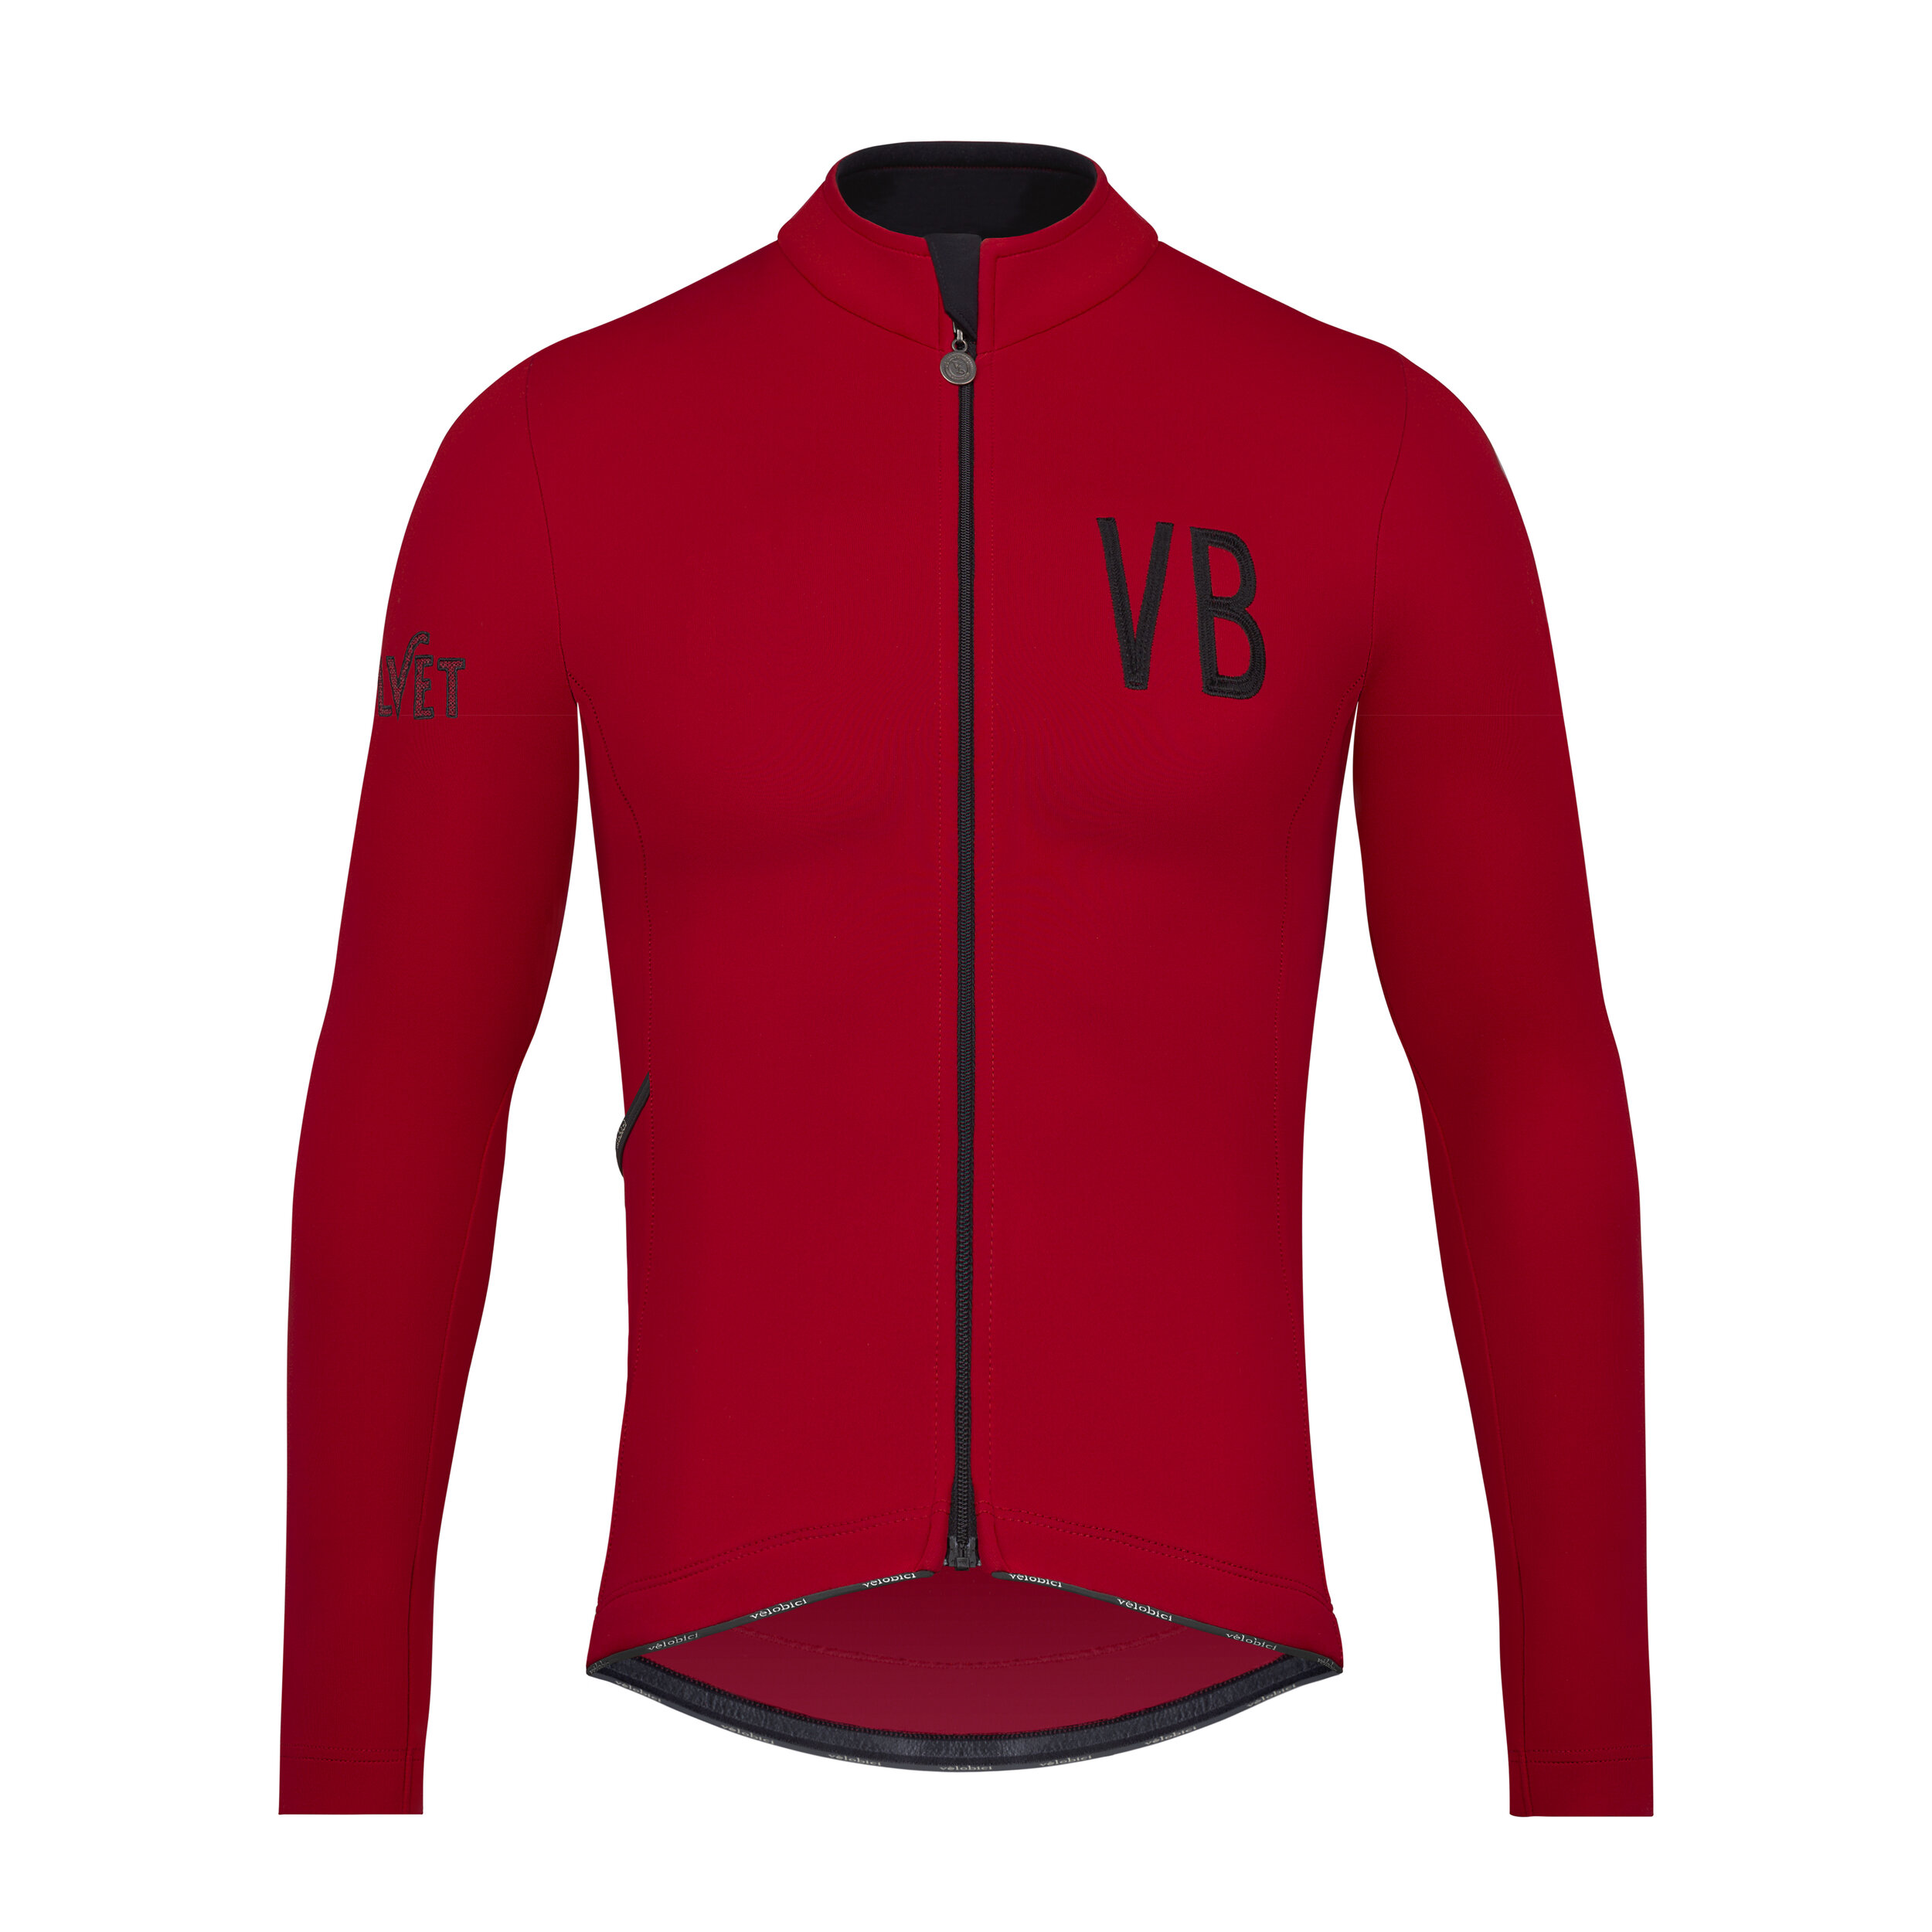 Velobici-Velvet-Red-Thermal-cycling-Jersey-Front.jpg